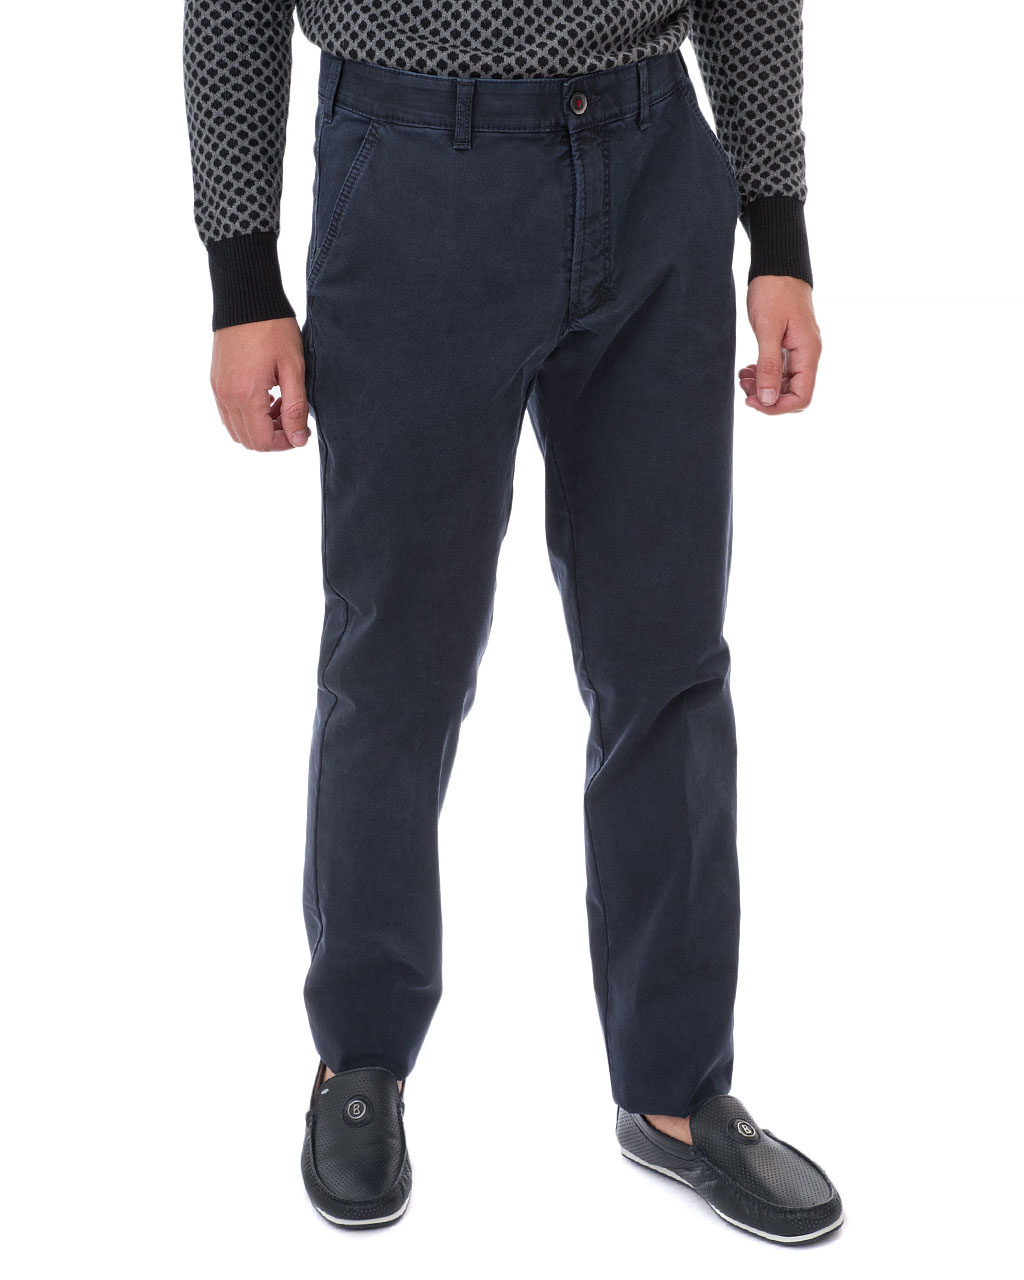 Men's trousers Garvey 6429-44/19-20 (4)